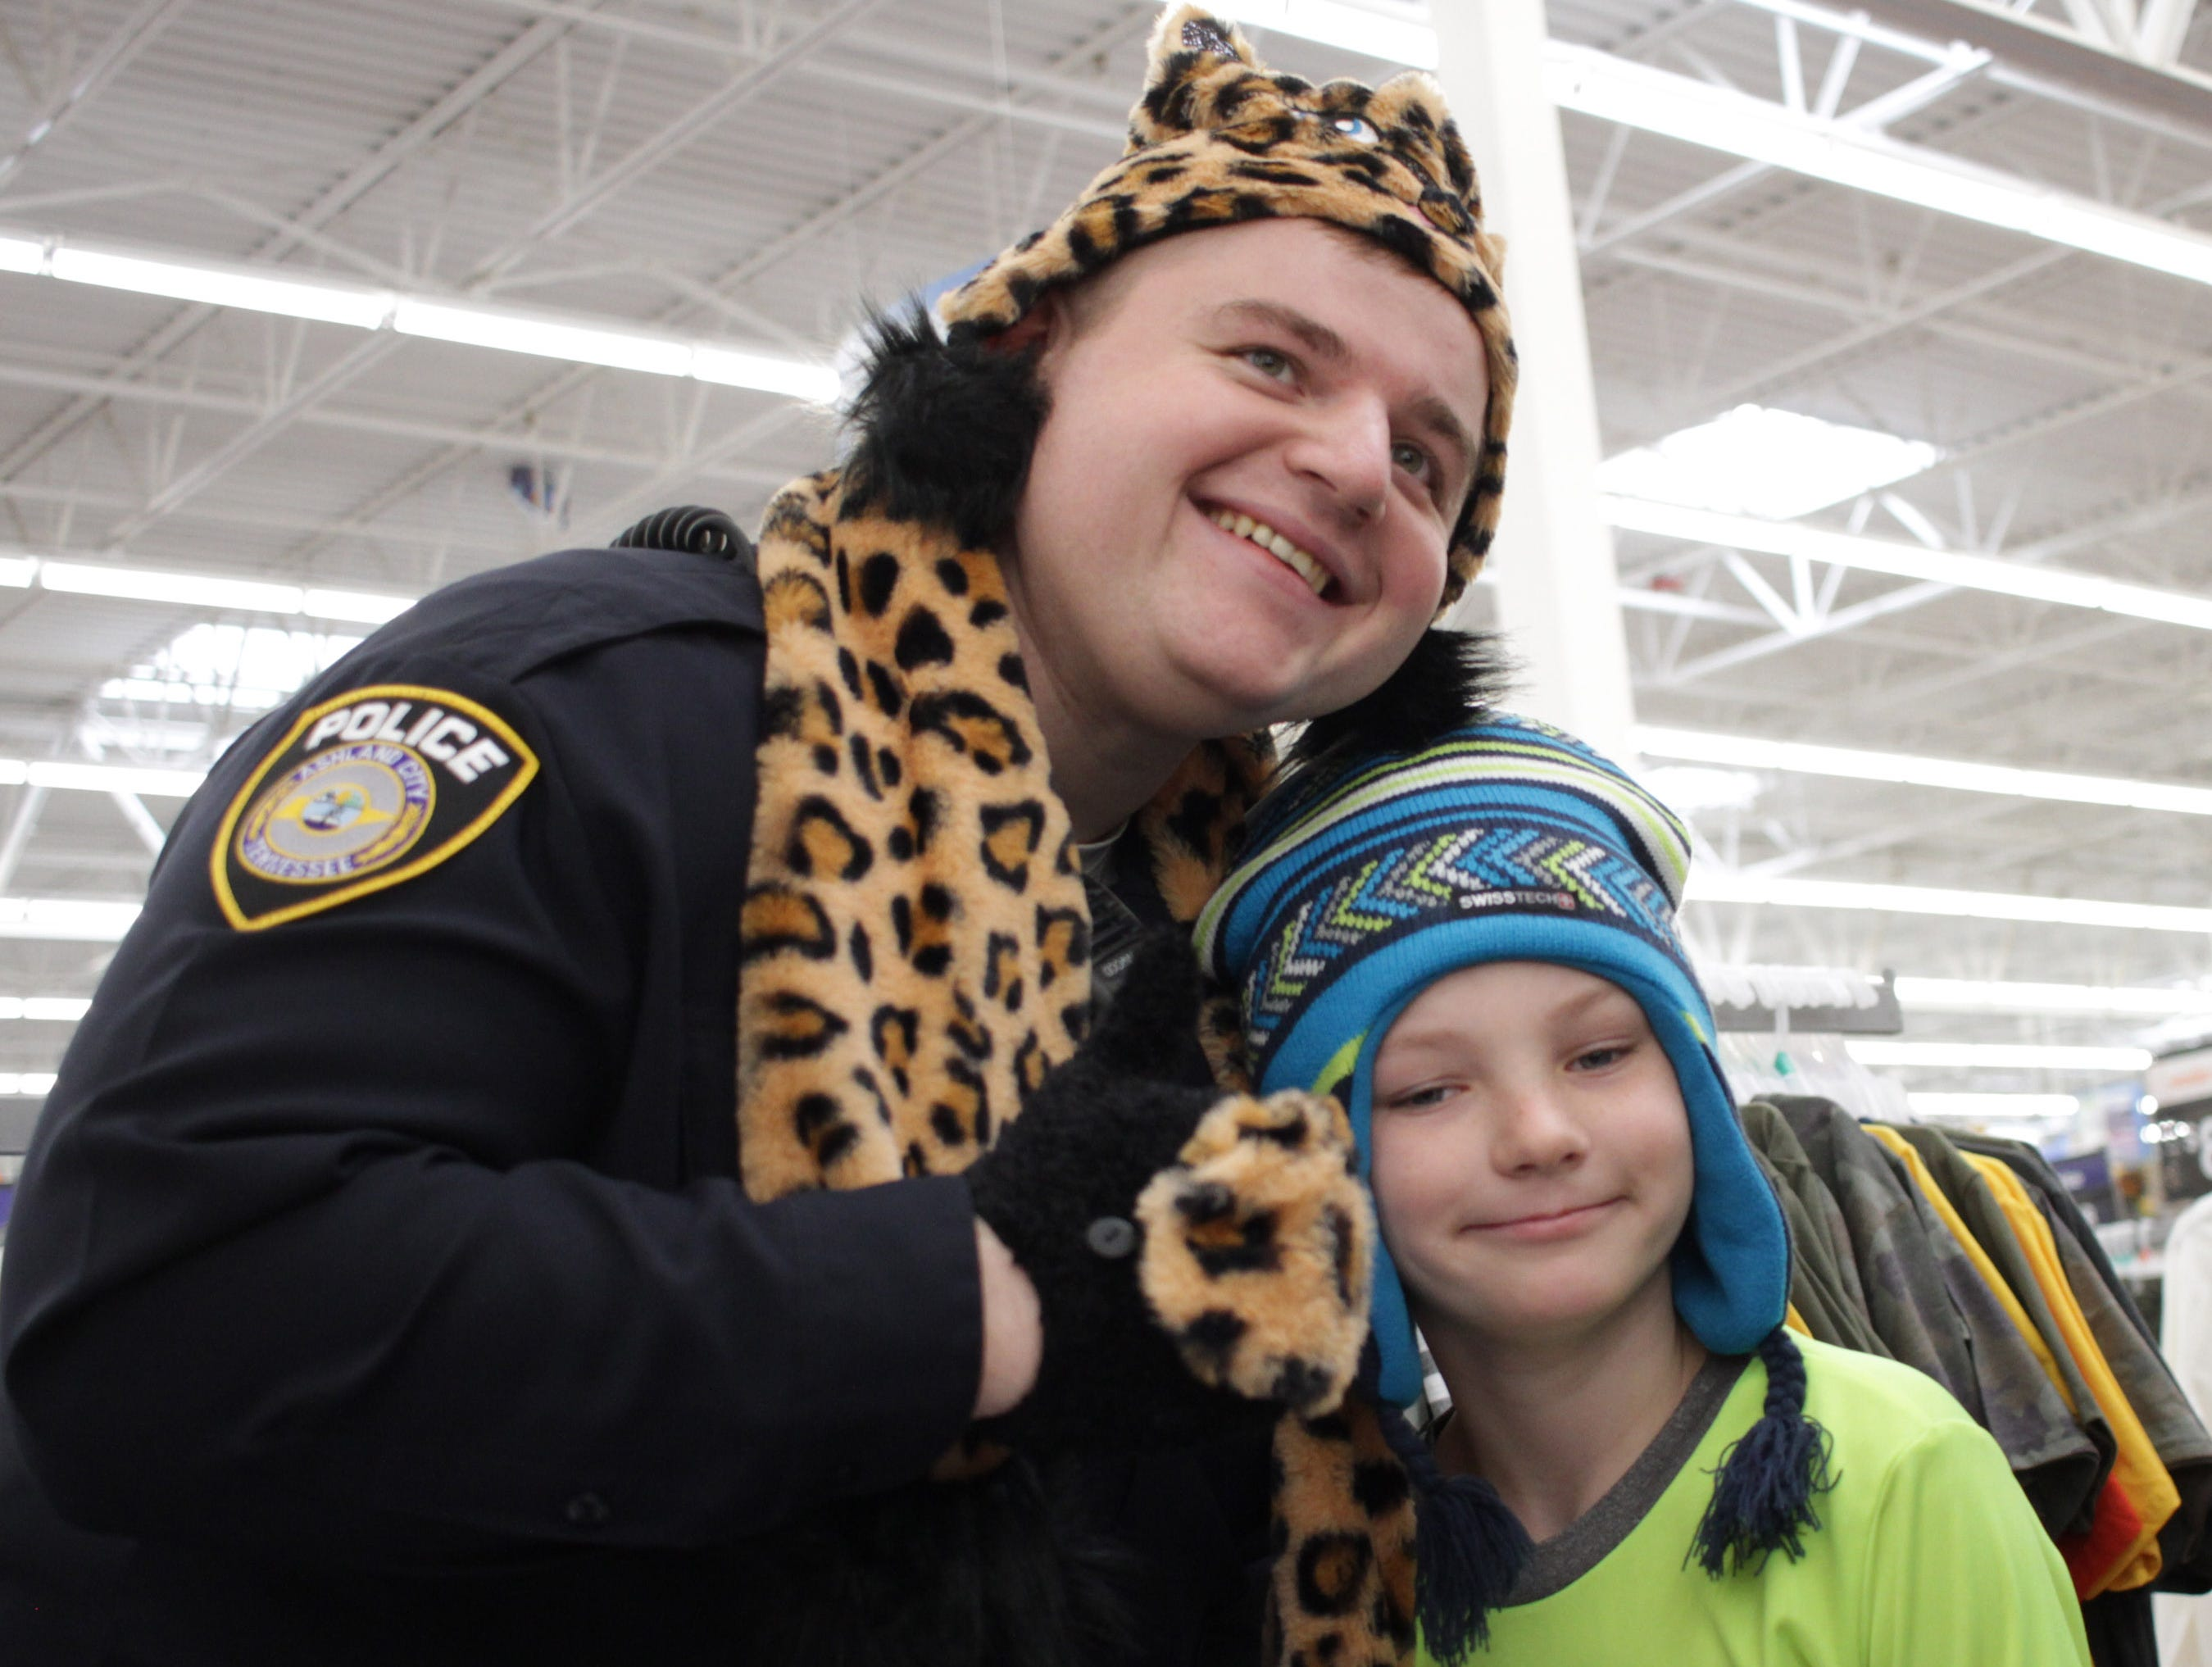 Officer Paul Garrett and Dalton Weaver (9) try on hats during Shop with a Cop in Ashland City on Saturday, December 15, 2018.